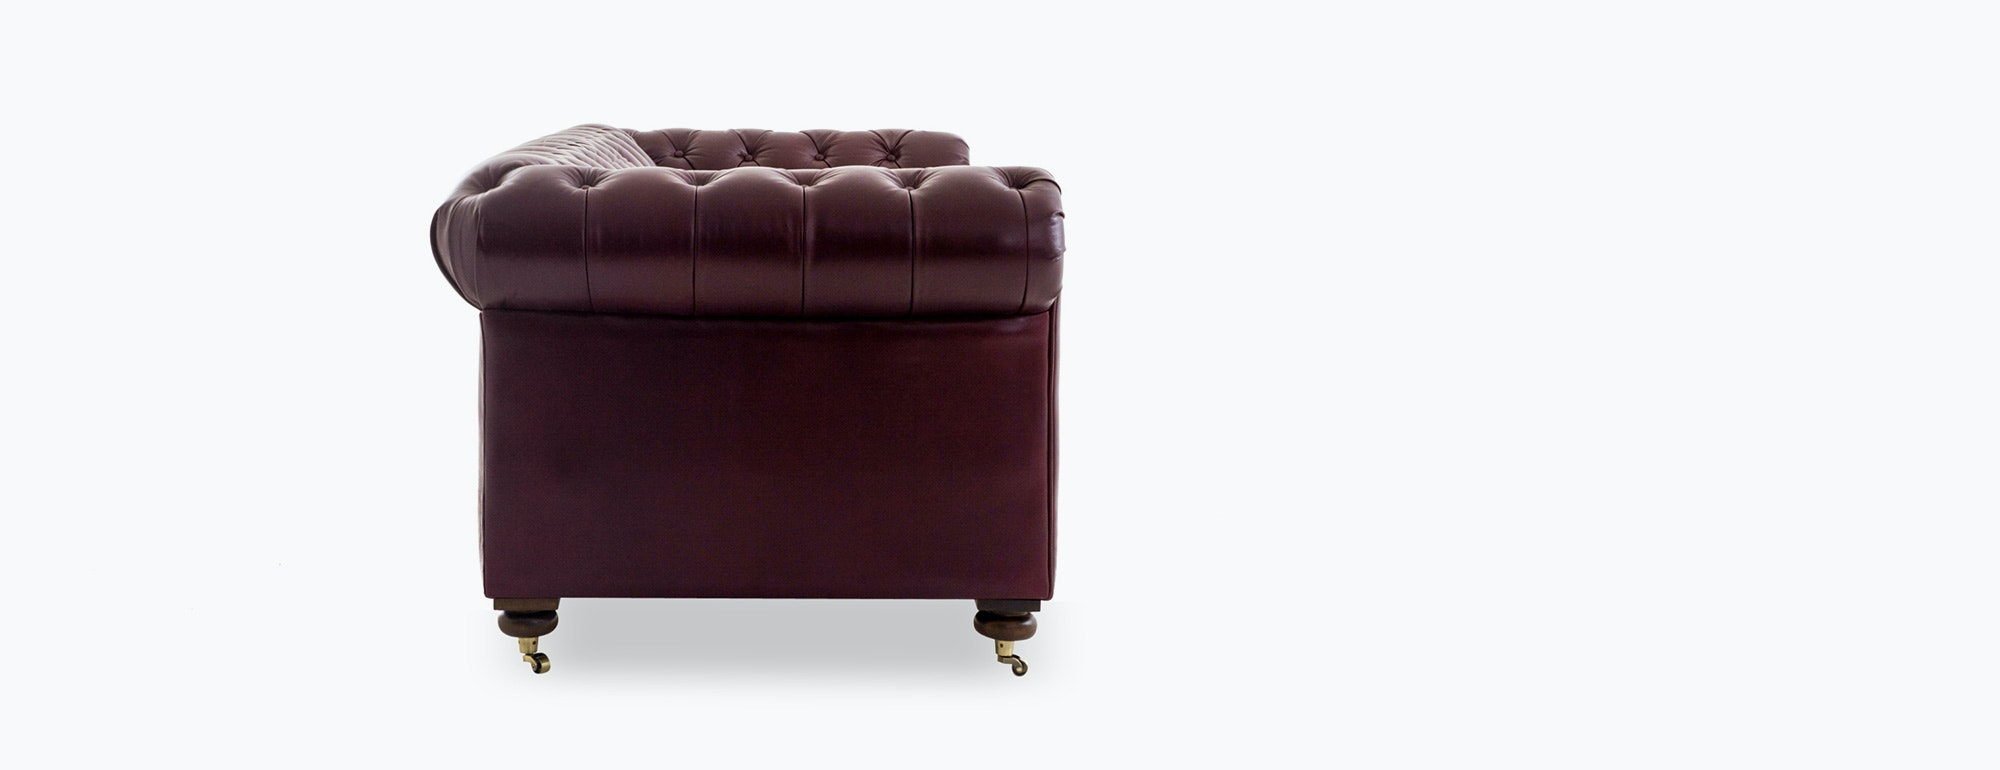 shown in Cowboy Plum Leather